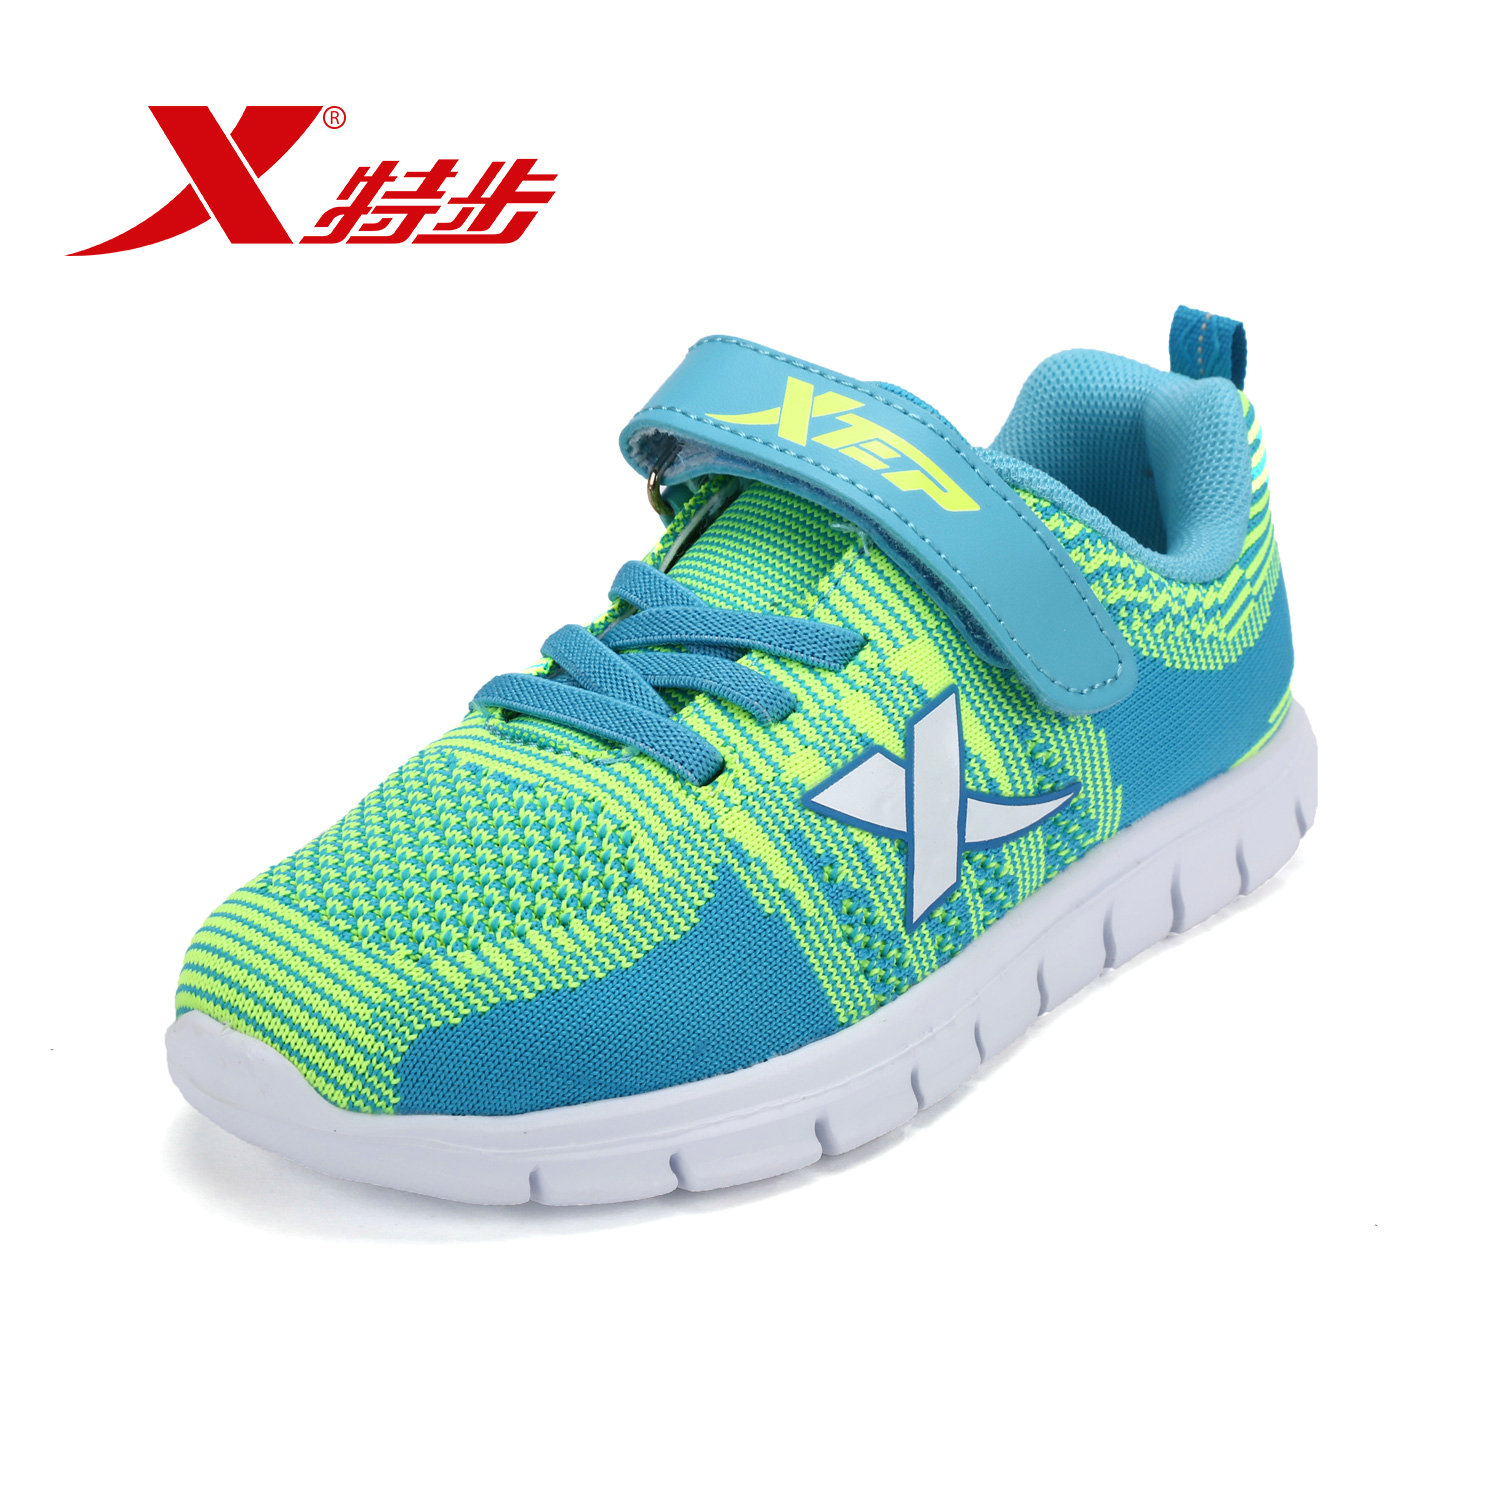 Xtep shoes men's shoes running shoes big boy shoes breathable mesh shoes fashion hundred children take men's sports shoes